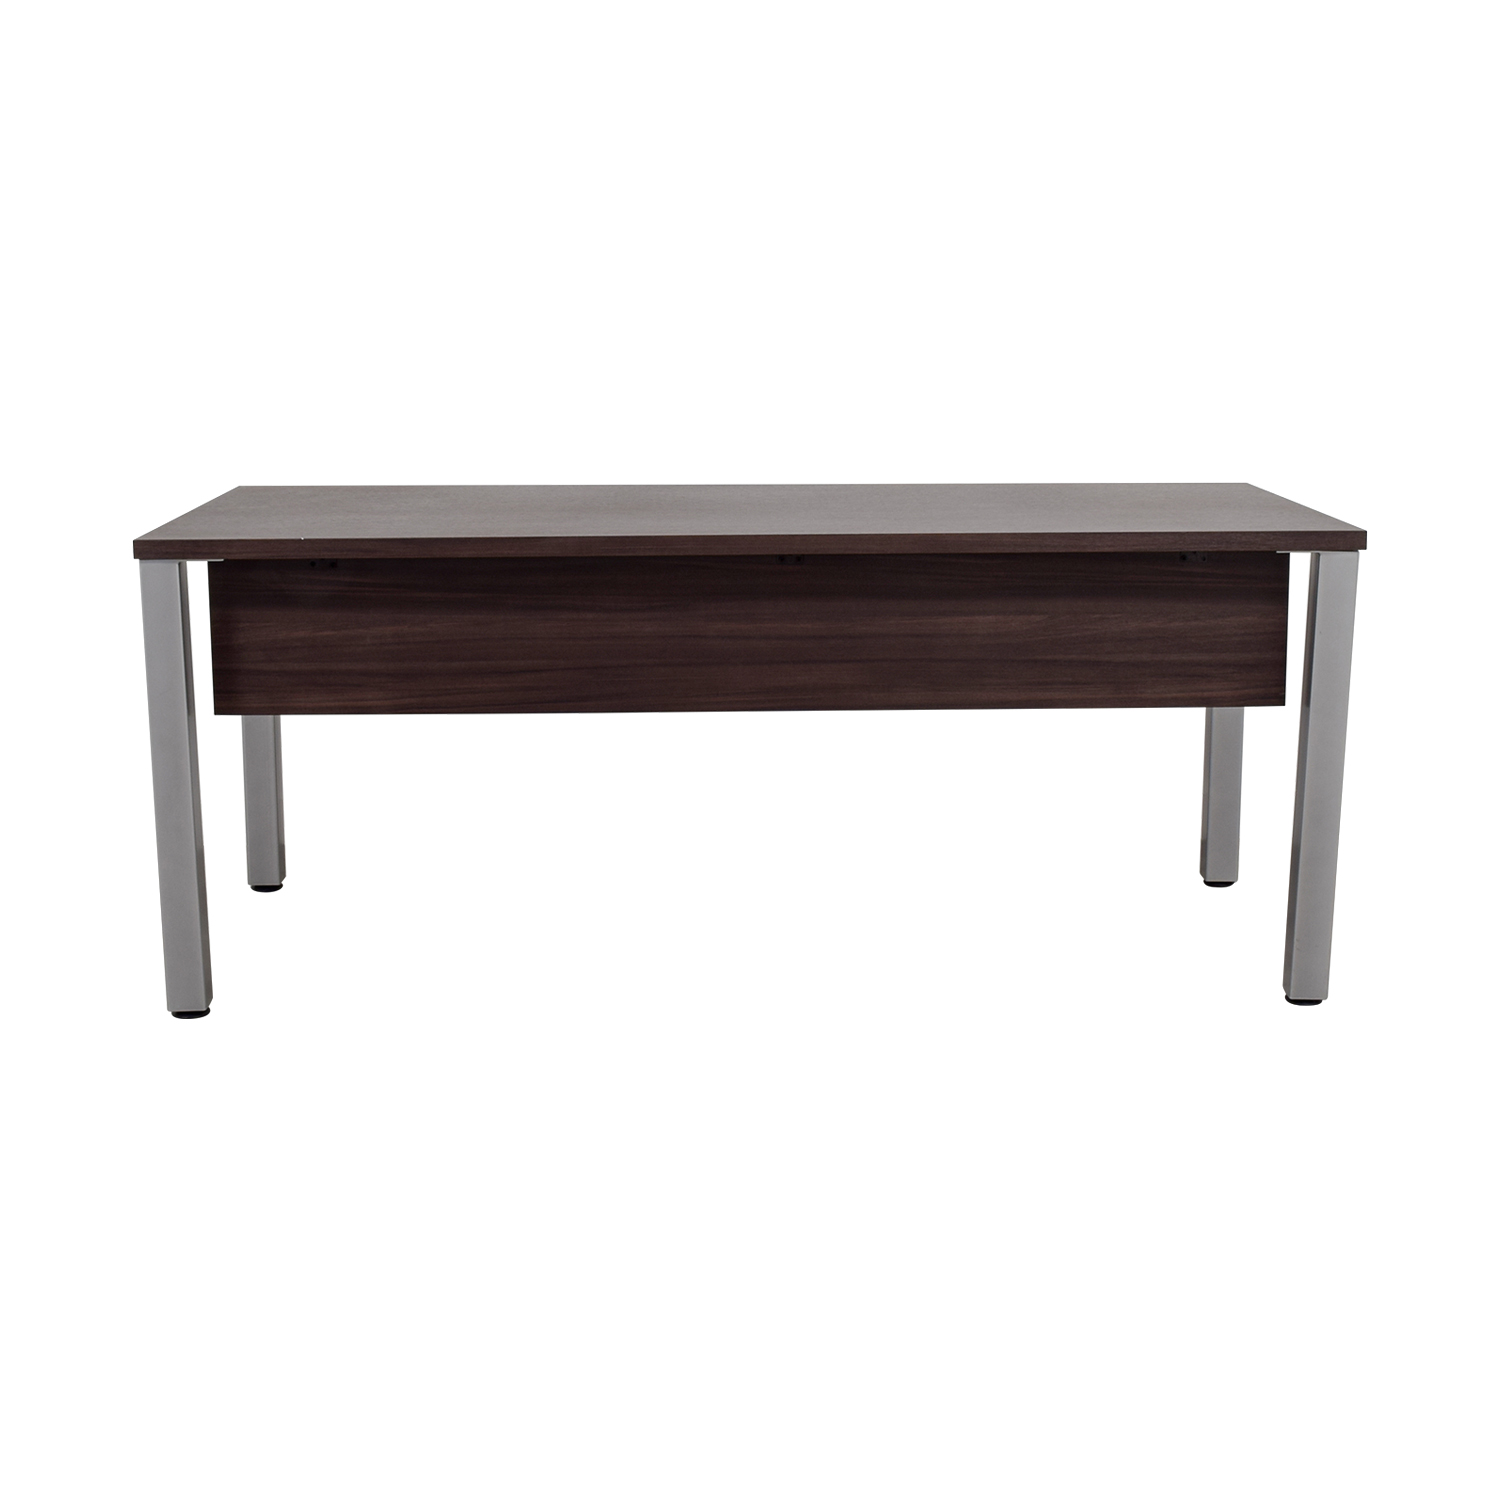 Mahogany and Chrome Office Desk coupon